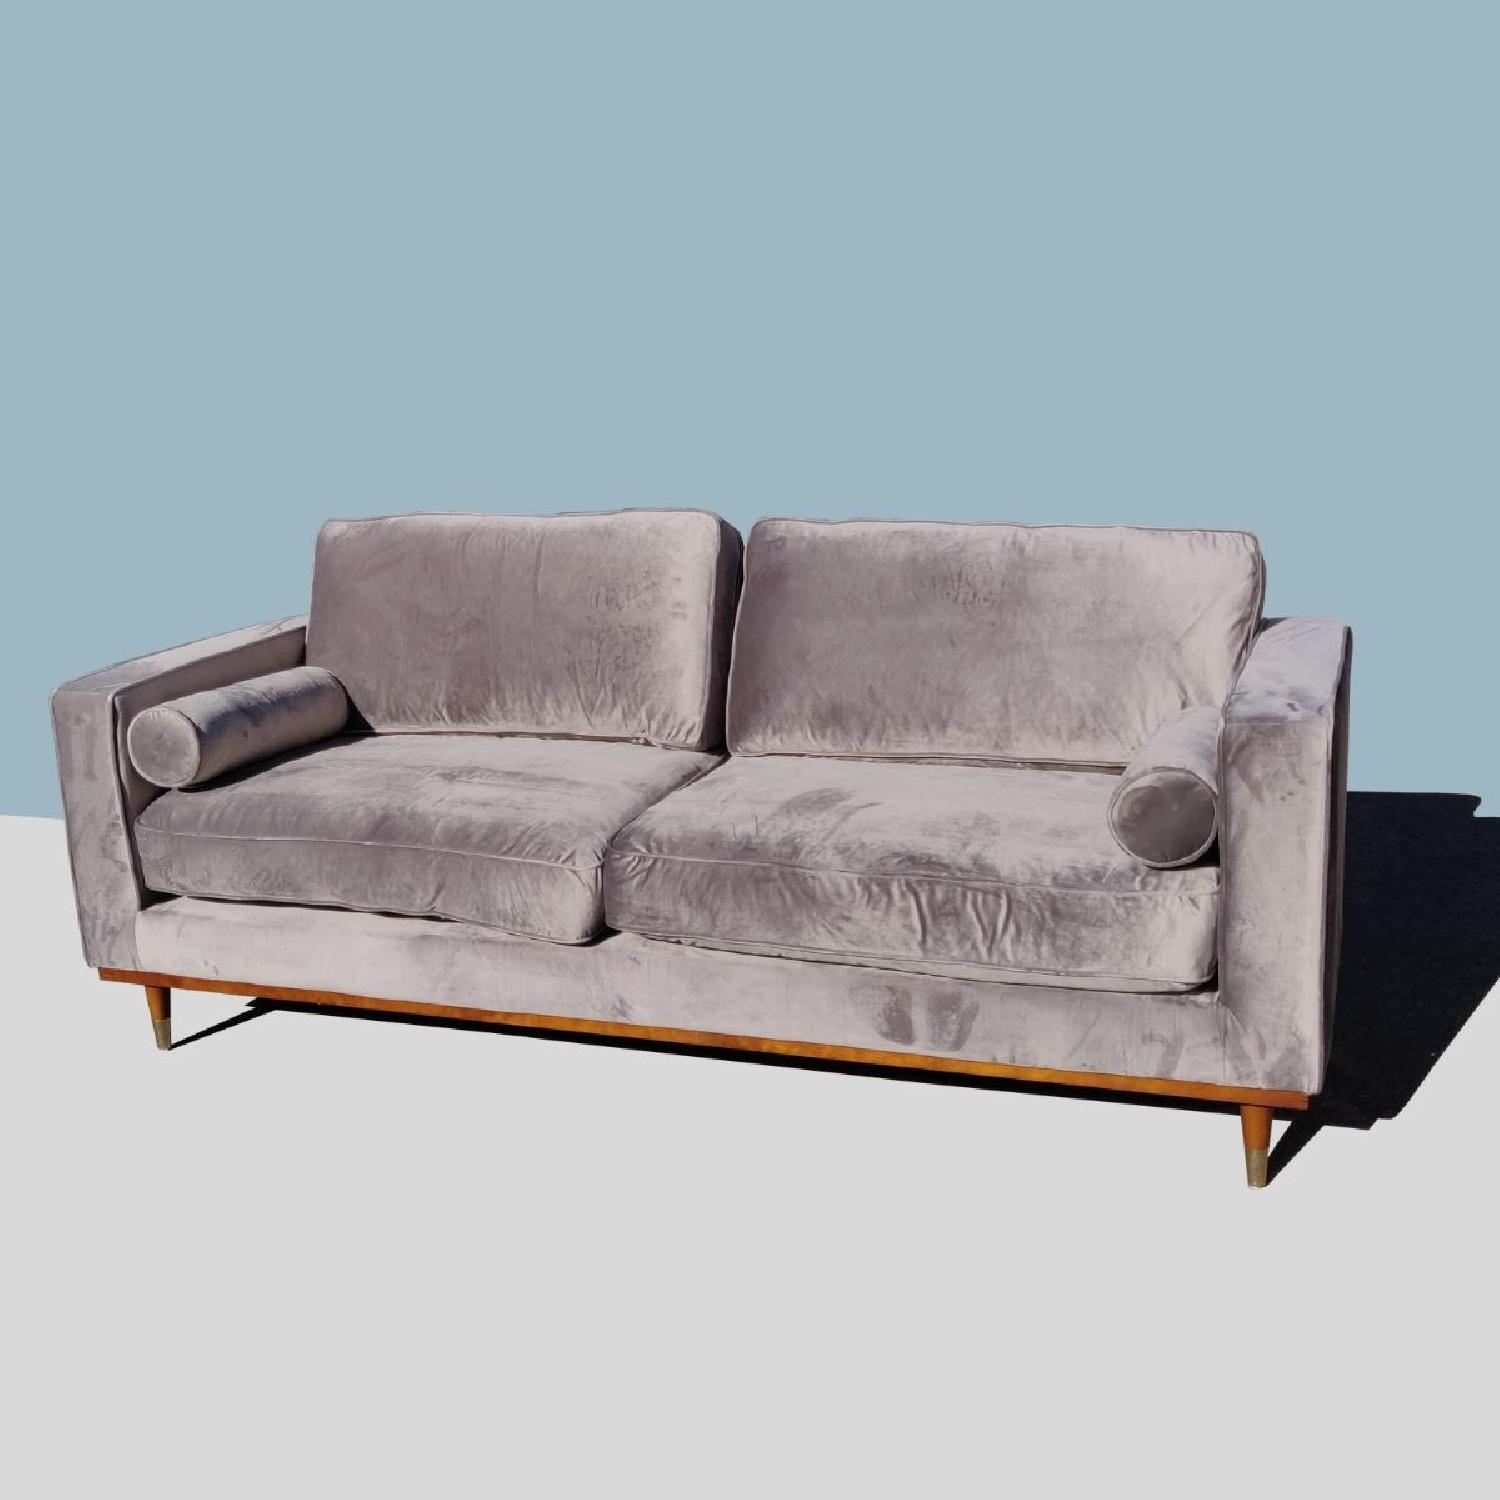 Brooklyn Space Introspect Mid-Century Modern Sofa